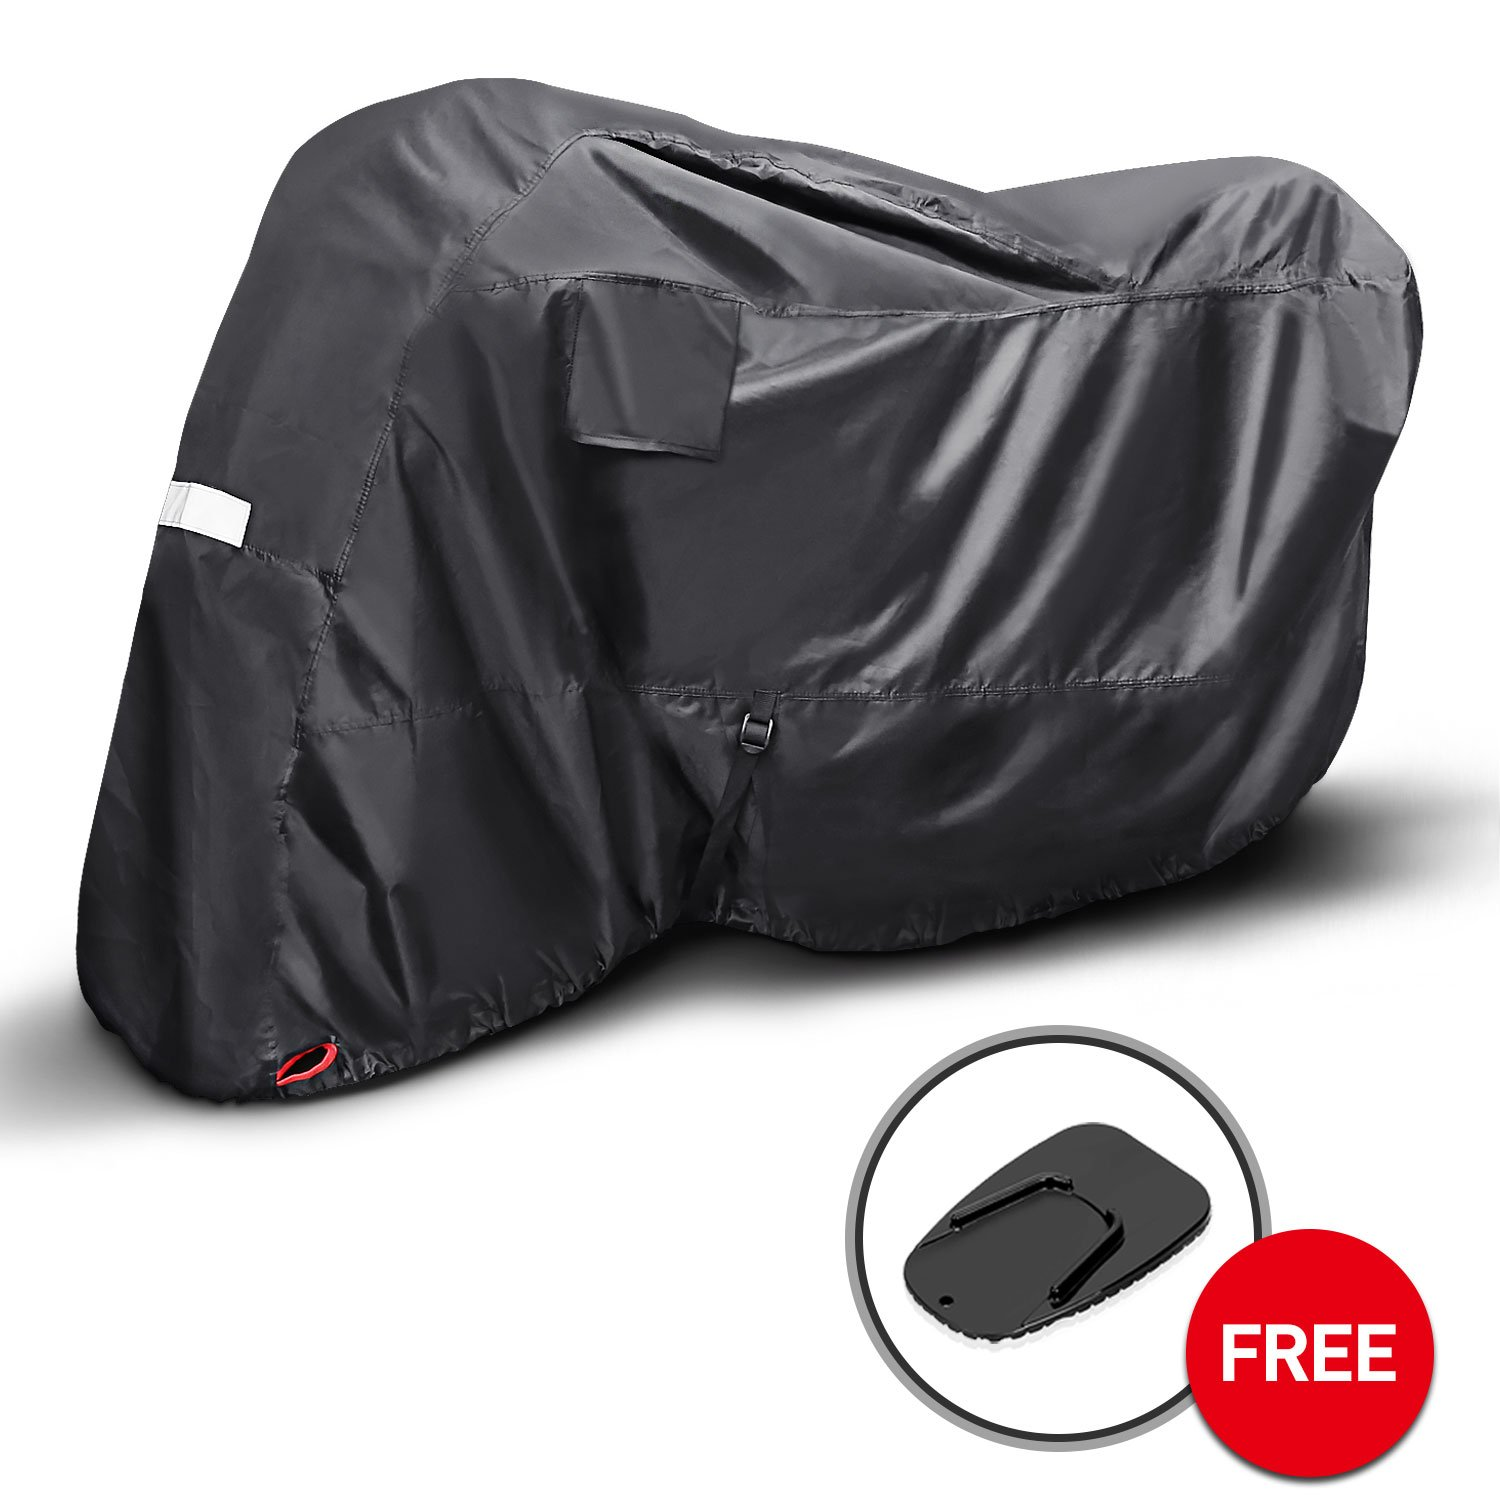 KAKIT Motorcycle Cover, Waterproof All Weather Outdoor Protection Motorcycle Covers, 210D Oxford Durable and Tear Proof, Fits up to 90.2' Motors, for Harley, Honda, Yamaha, Suzuki and More Fits up to 90.2 Motors 4333030674